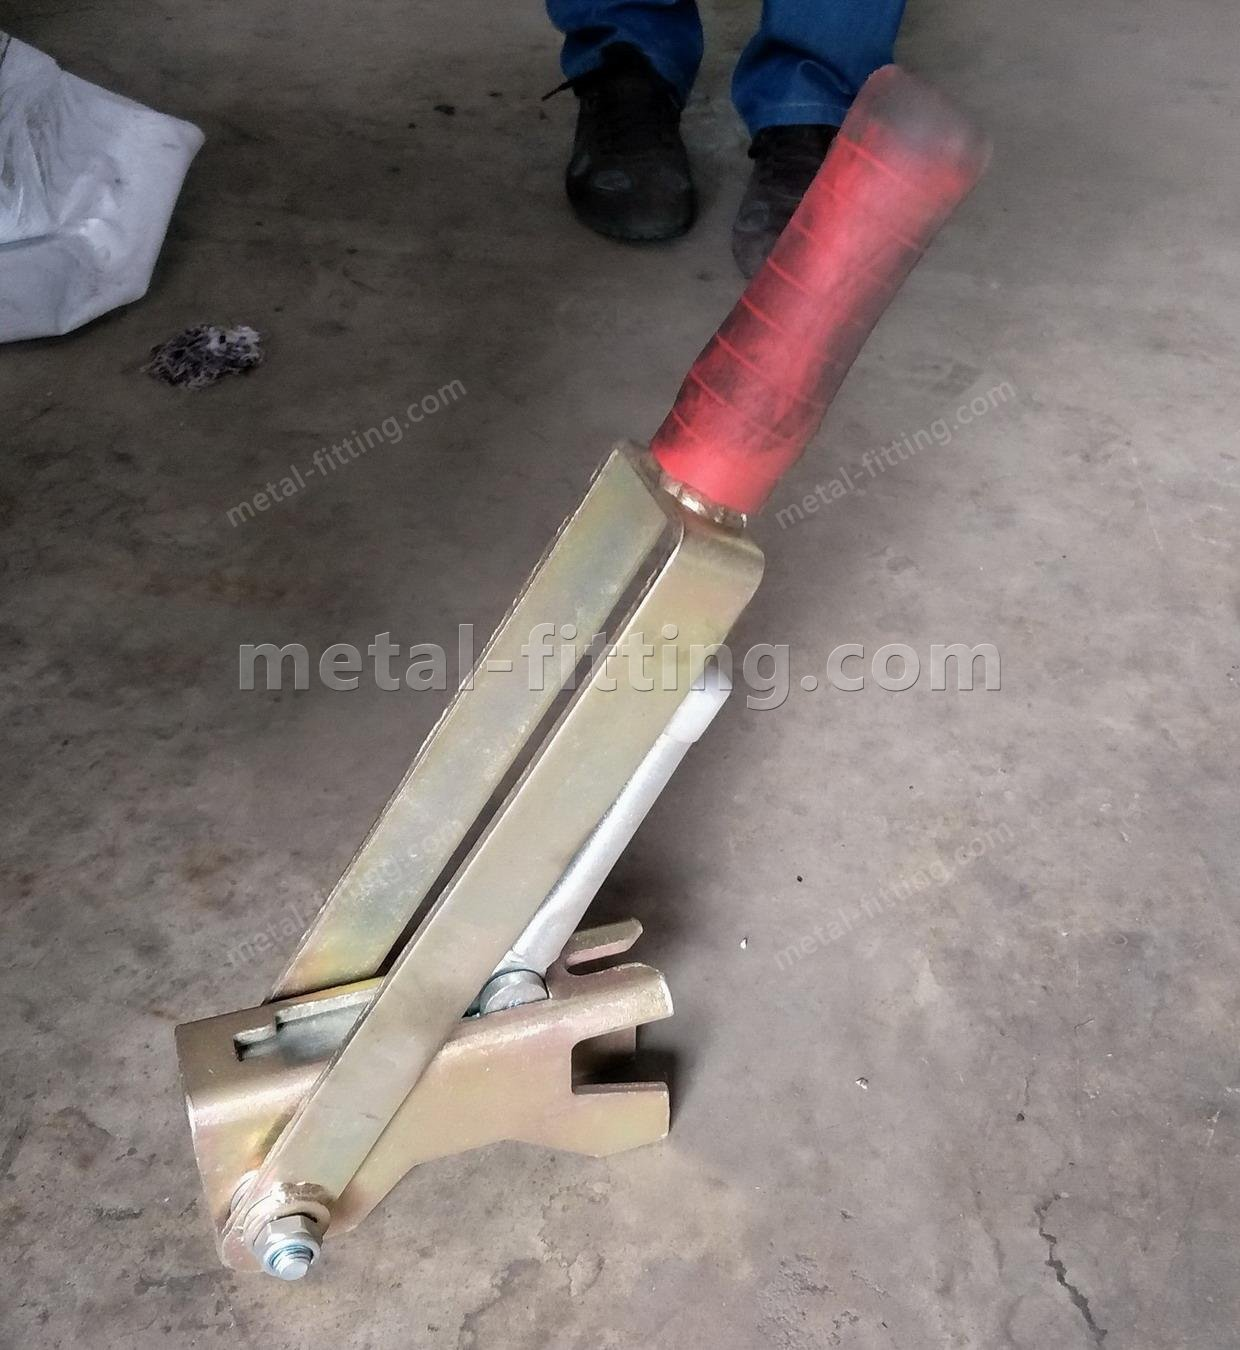 scaffolding fitting  system panel clamp-panel clamp (1)